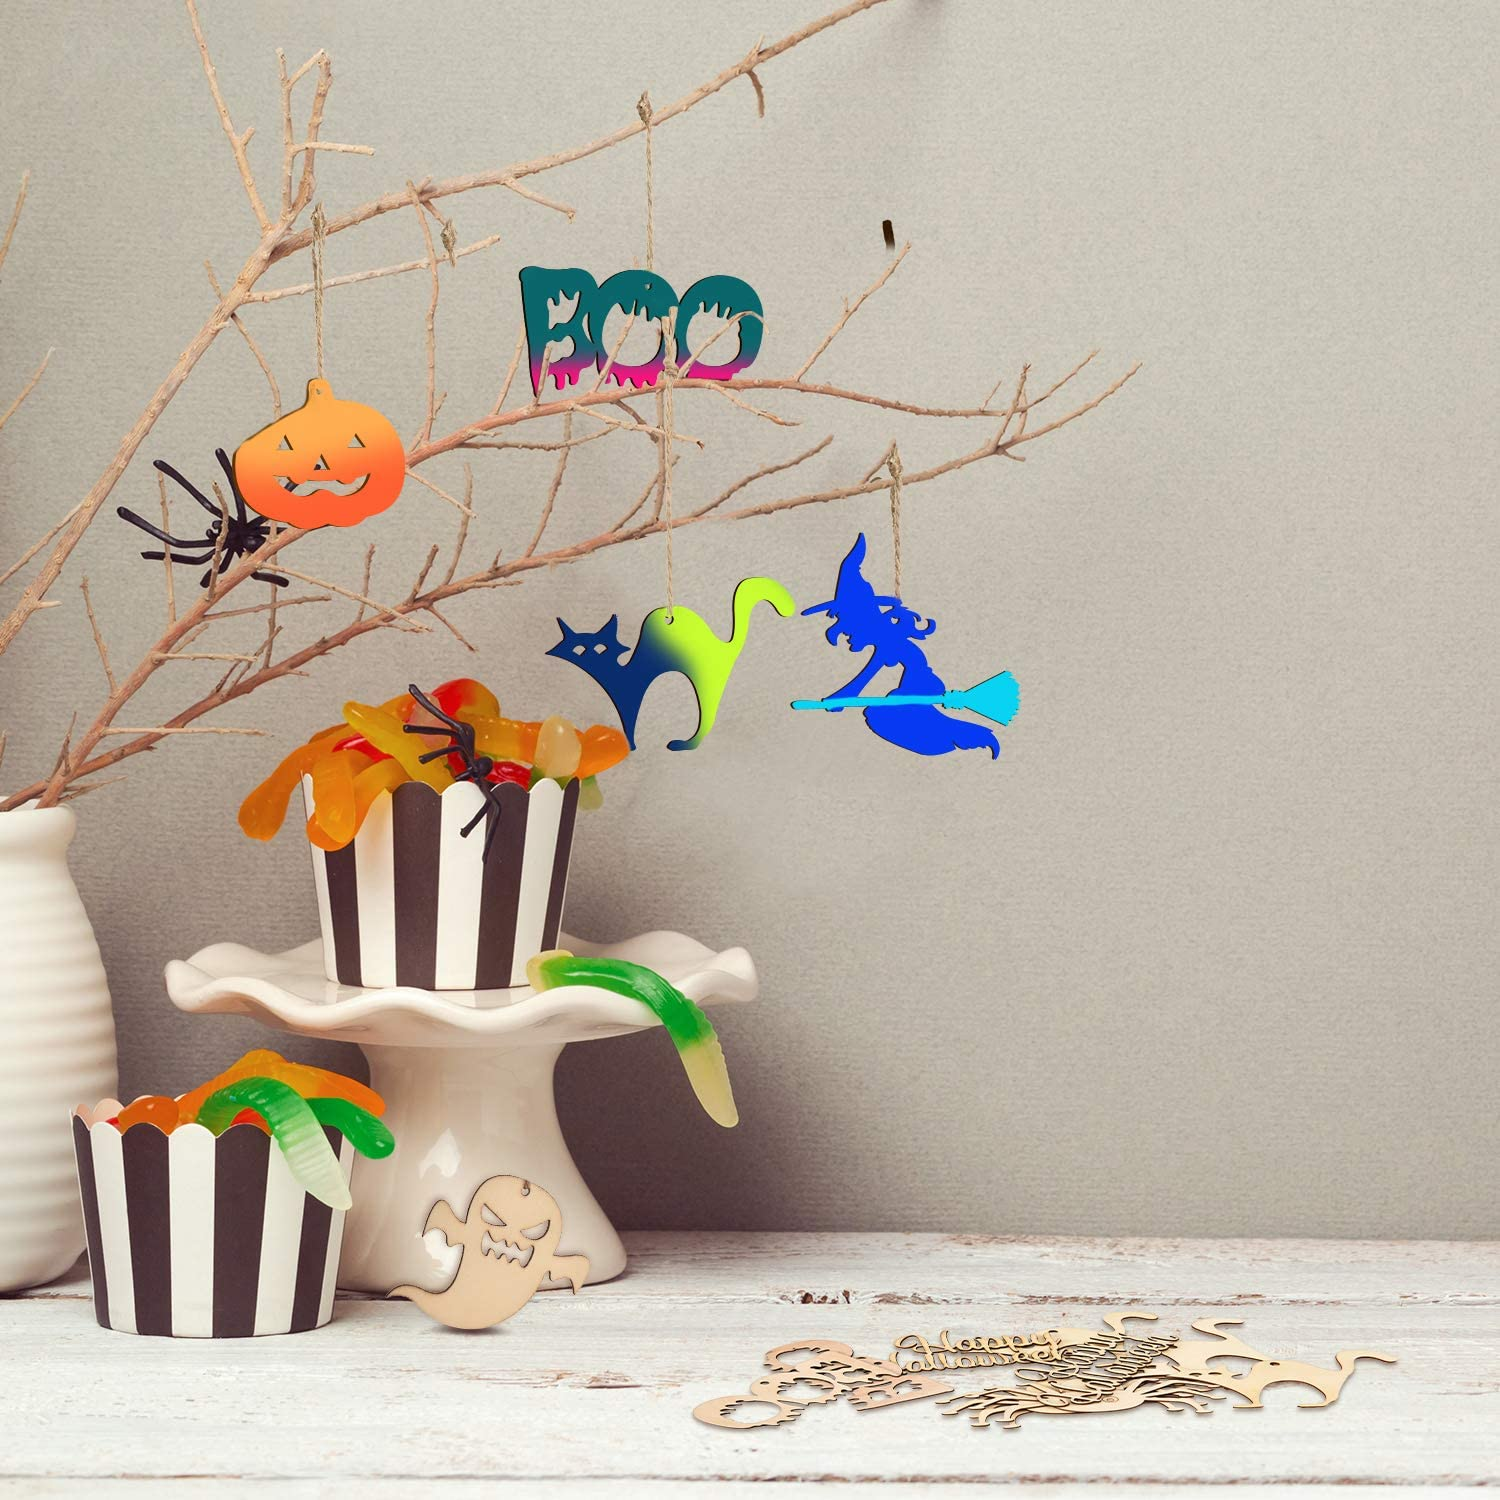 CheeseandU 100 Pieces Halloween Wooden Slices Blank Hanging Tags Pumpkin Hanging Wood Ornaments Halloween Cutouts Crafts with 100 Pieces Twine Ropes for Halloween Party Ornaments Supplies